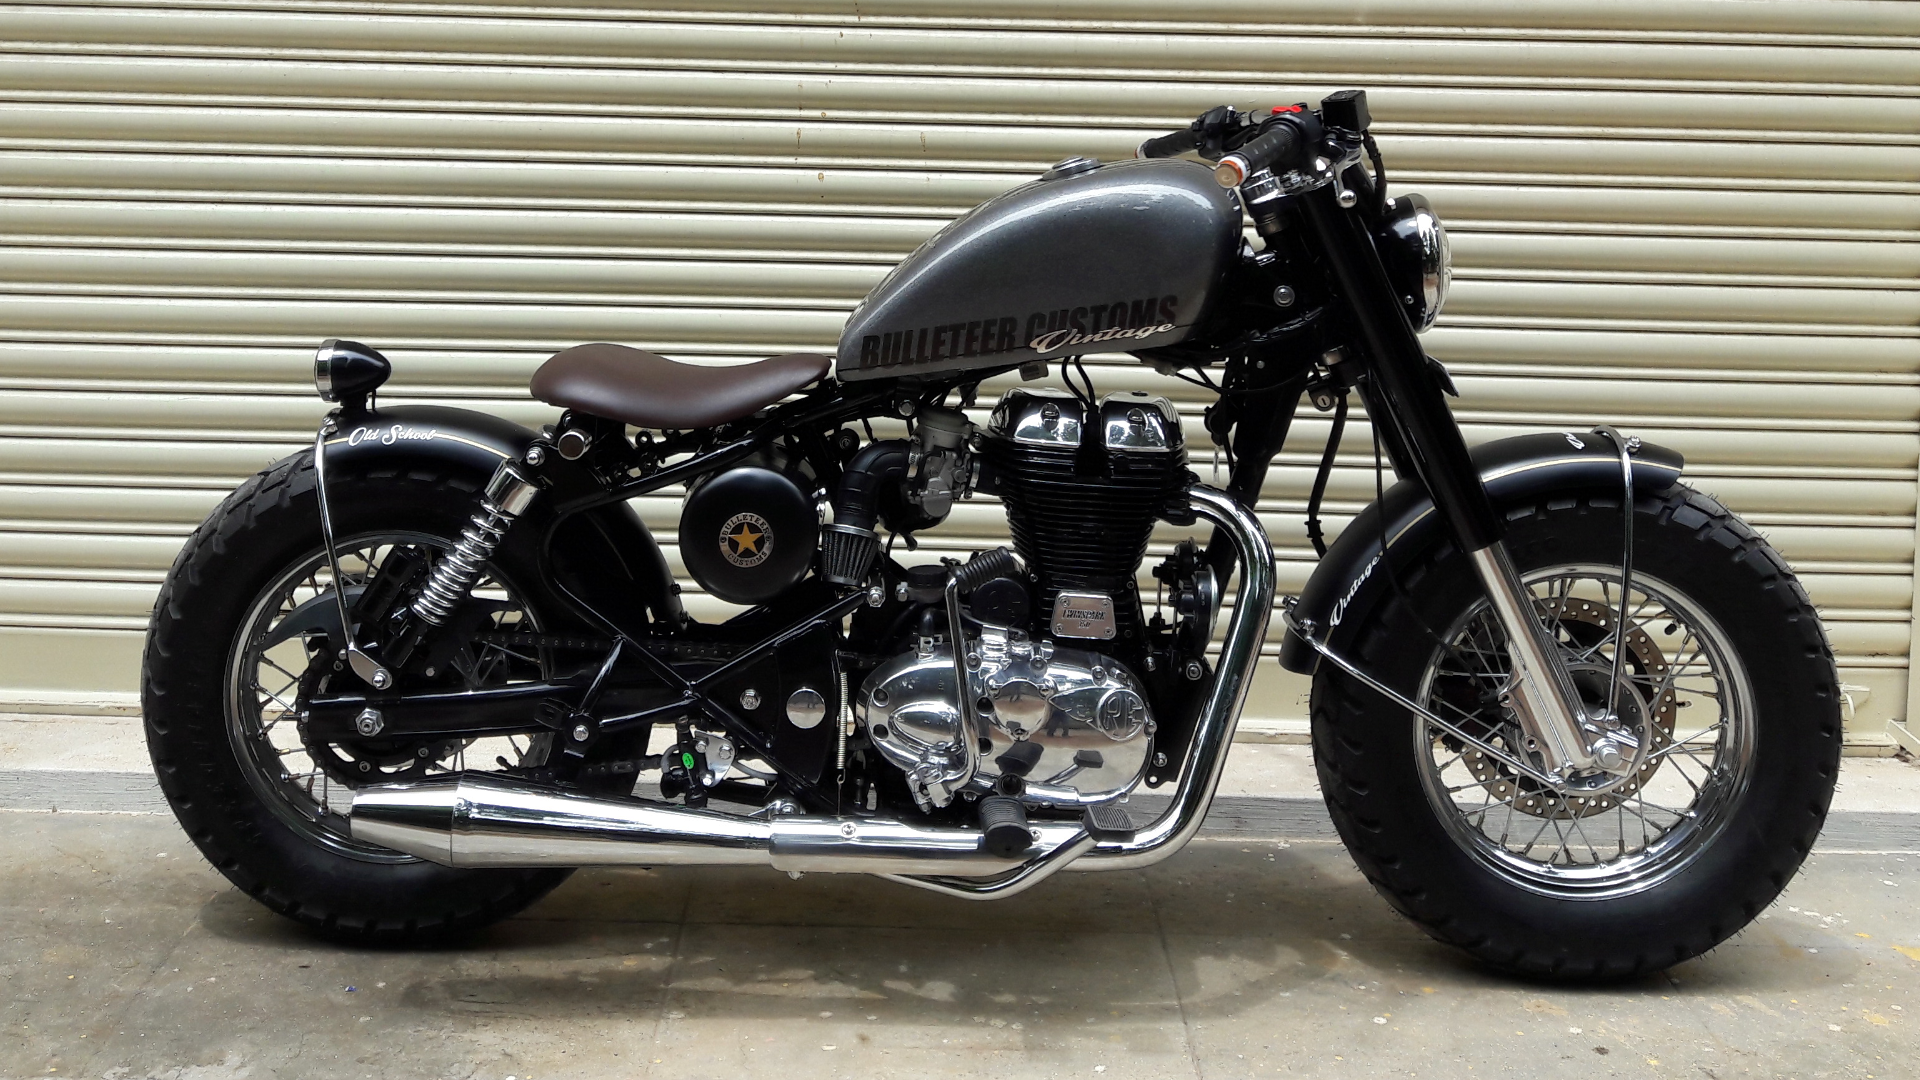 Royal Enfield 350cc Bobber By Bulleteer Customs 350cc Com Bullet Bike Royal Enfield Royal Enfield Royal Enfield Modified